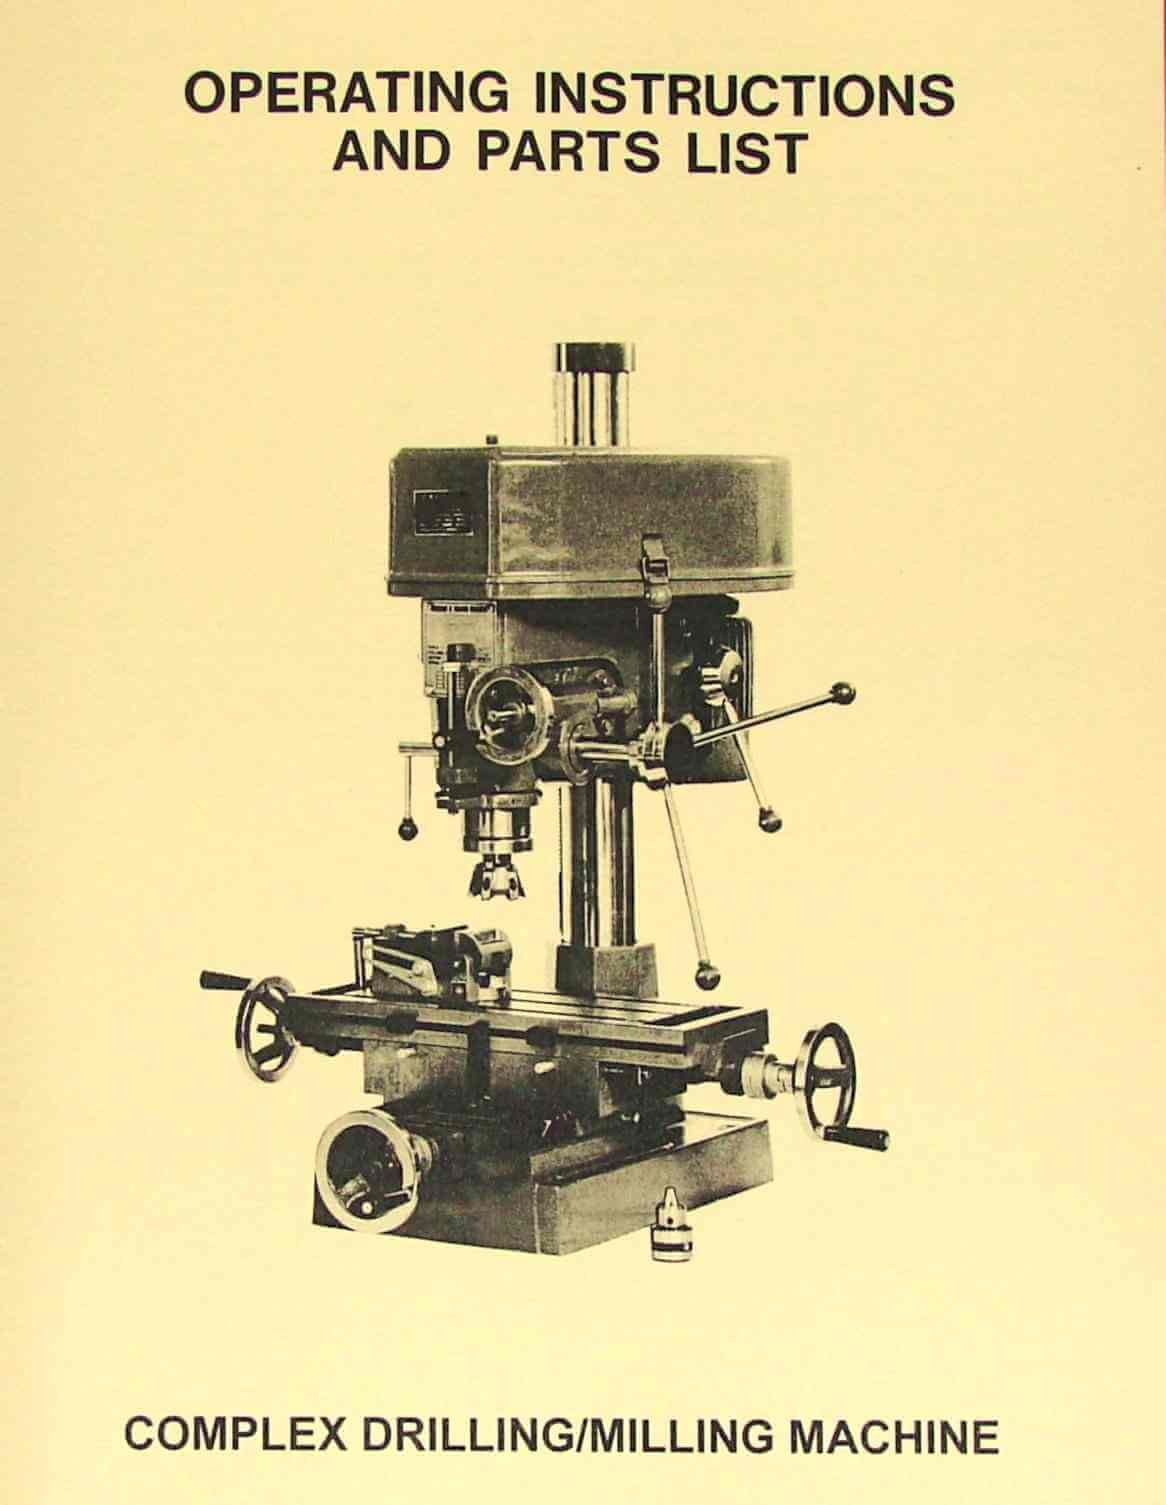 JET-Asian JET-16 Drill Milling Machine Instructions and